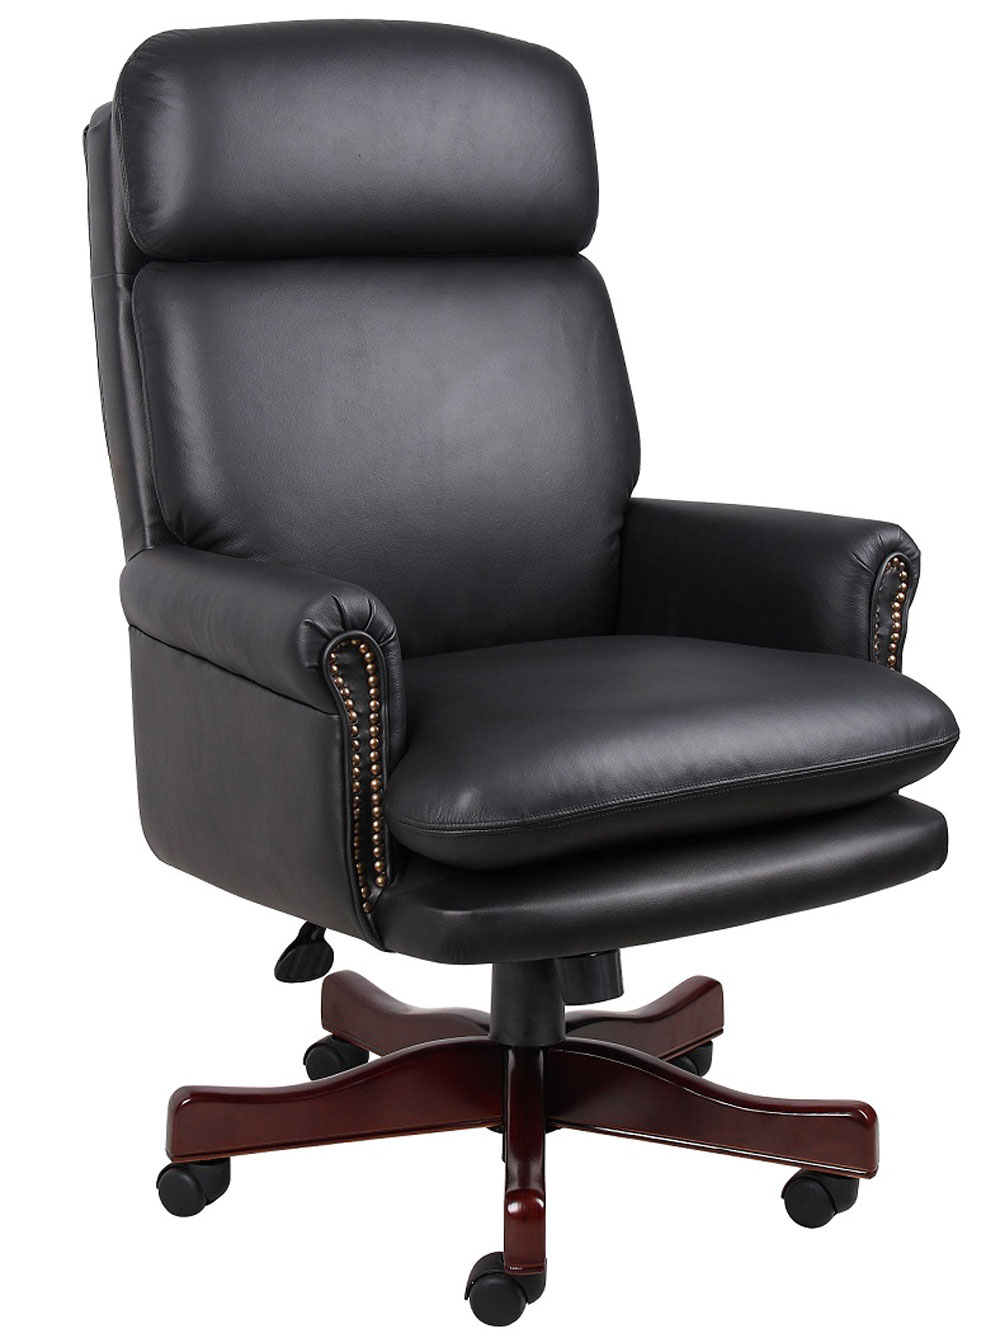 Traditional office chair office furniture for Best office furniture